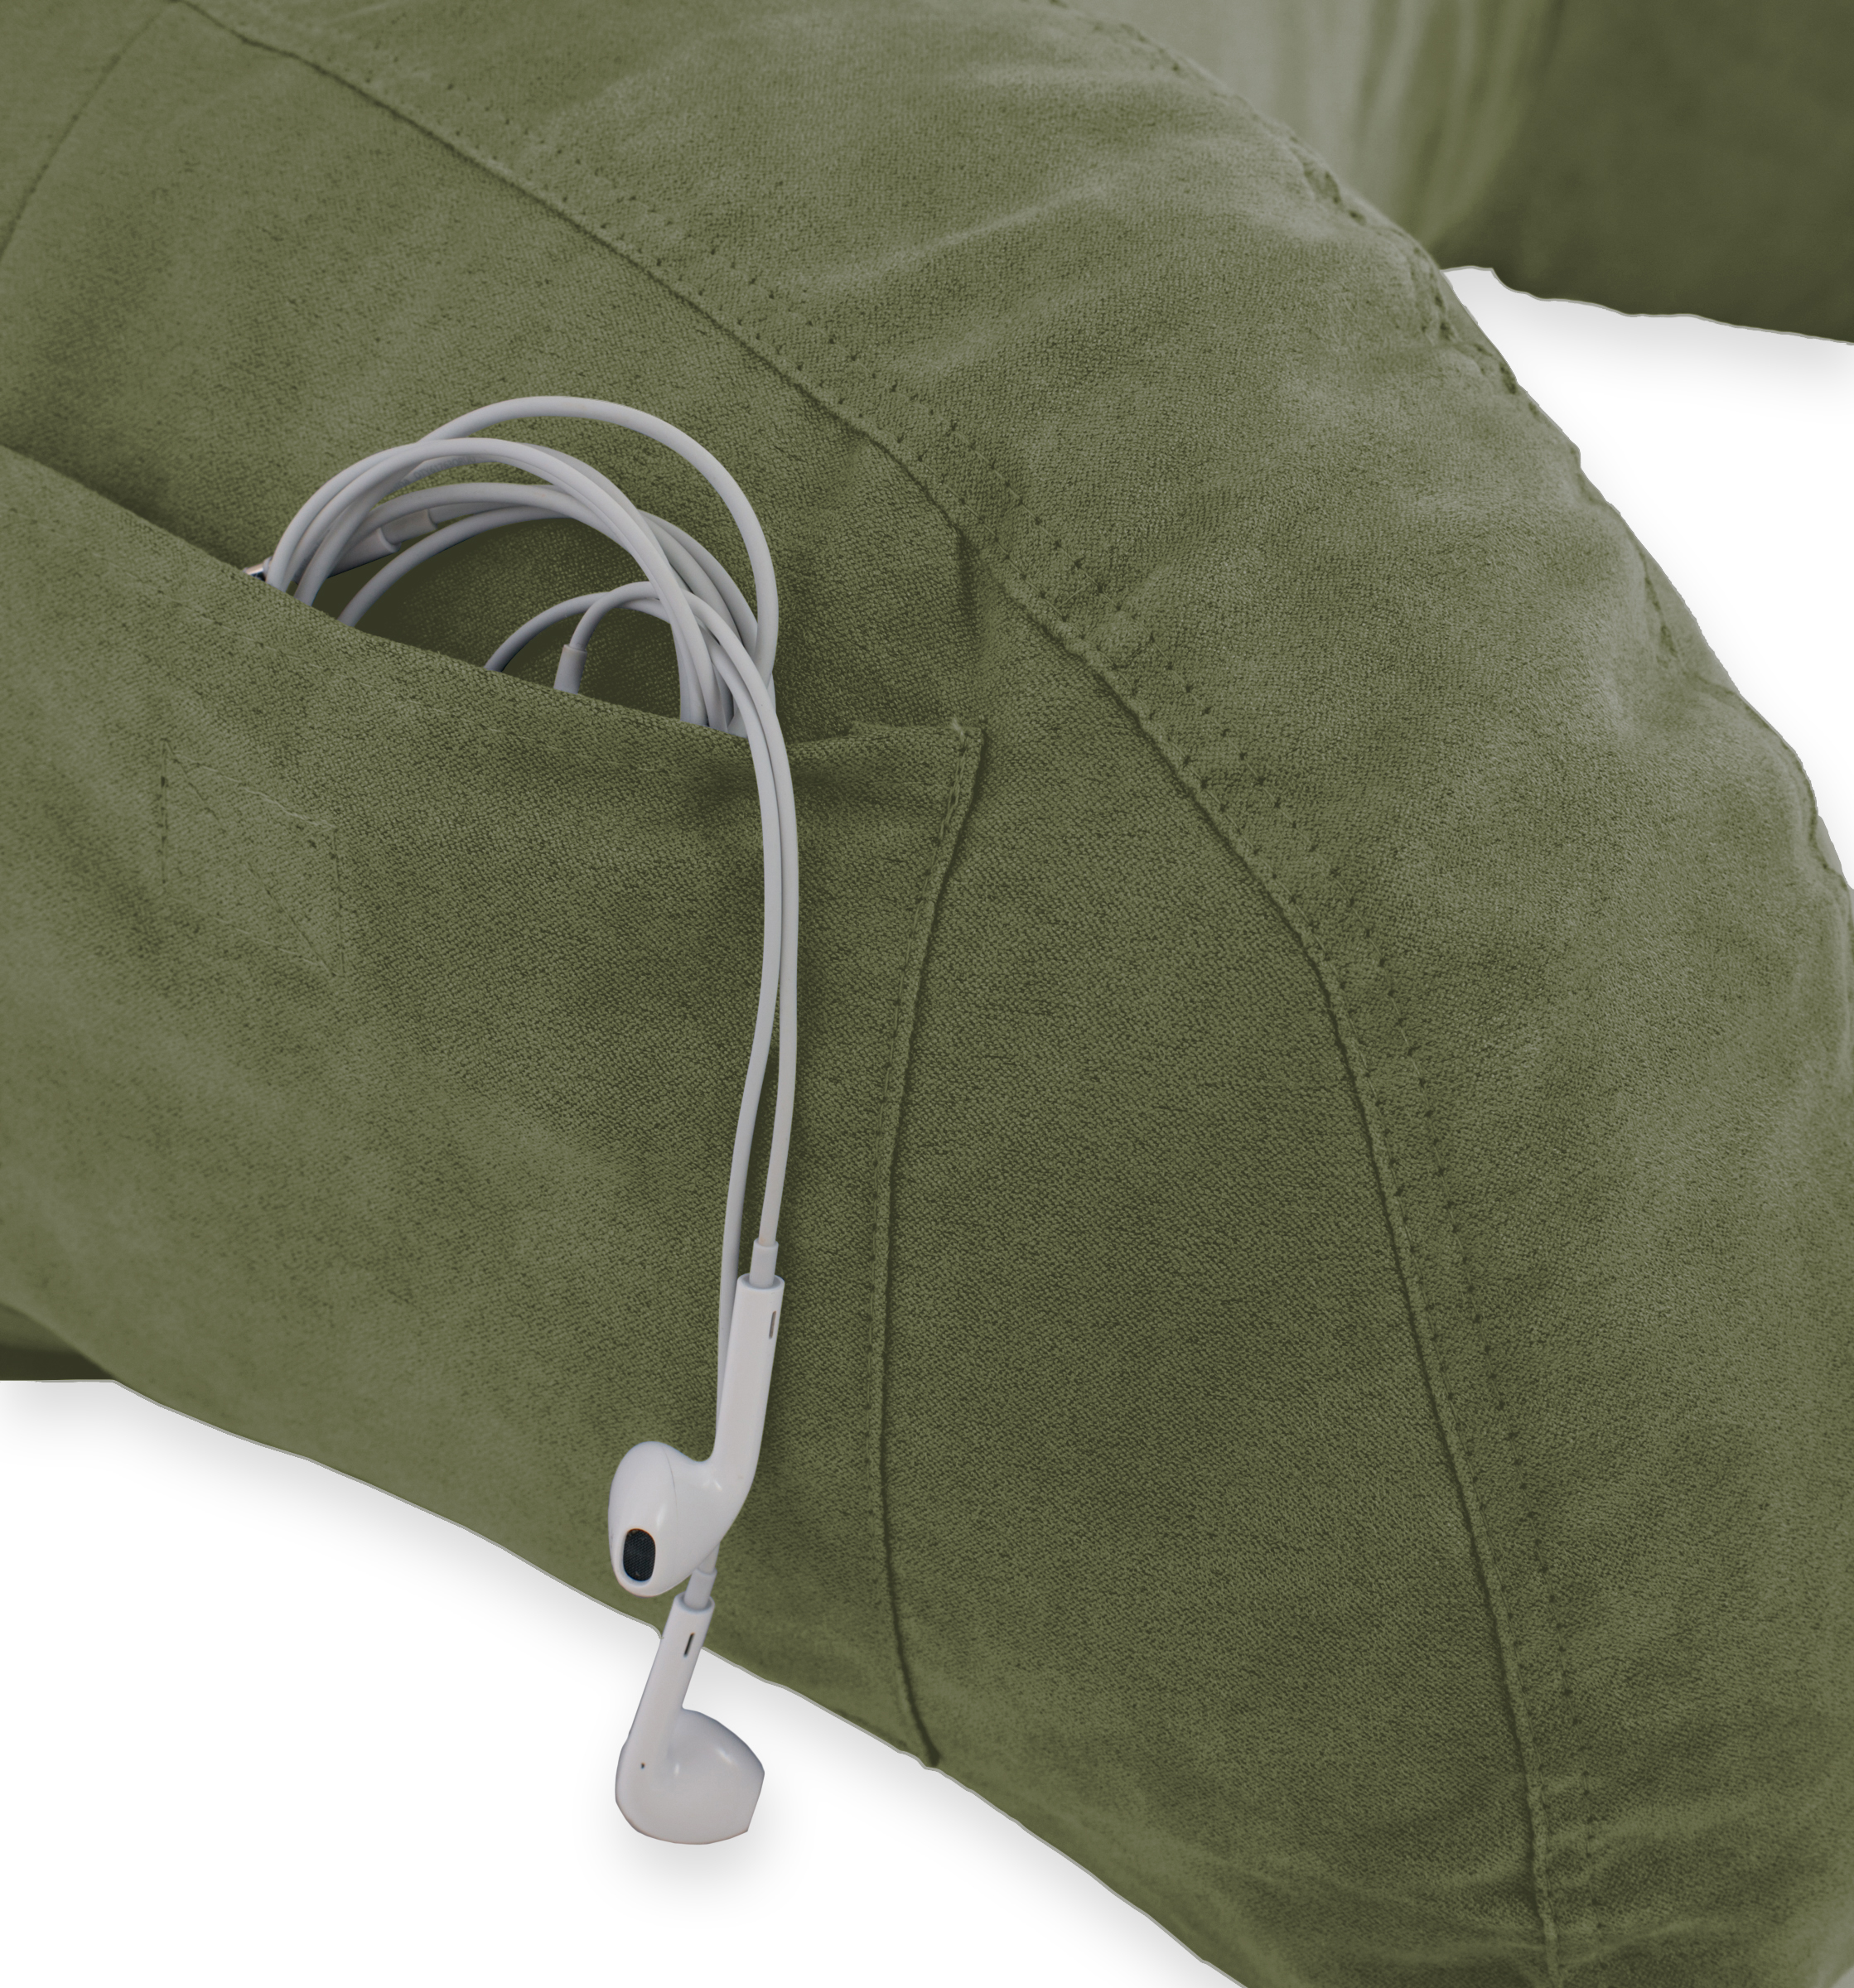 Microsuede-Bed-Rest-Reading-and-Bed-Rest-Lounger-Bed-Pillow thumbnail 19